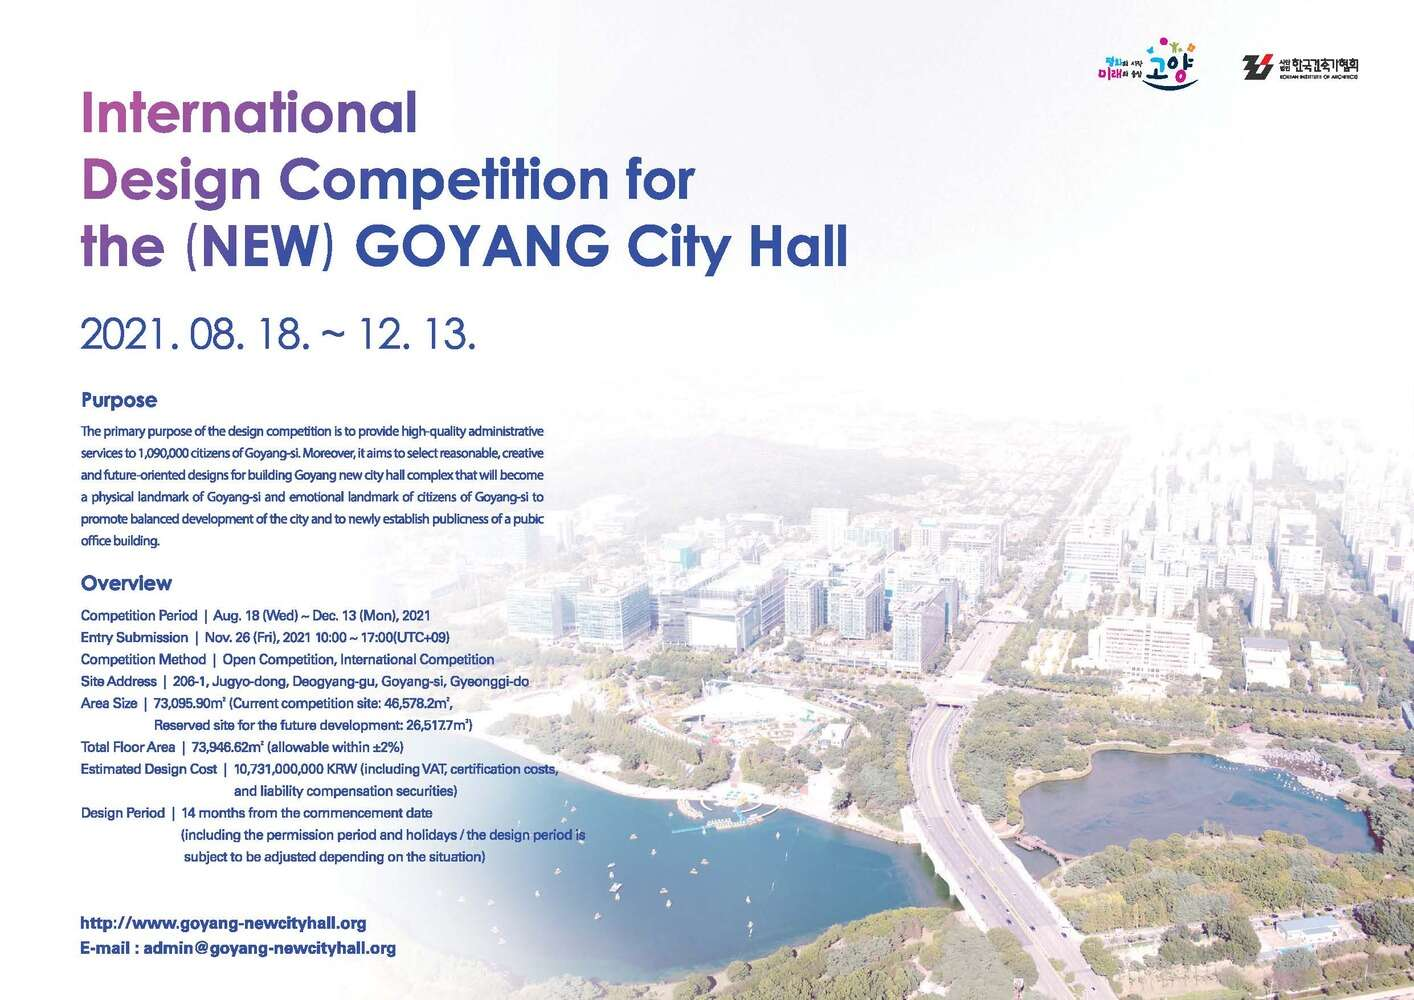 International Design Competition for the (New) GOYANG CITY Hall